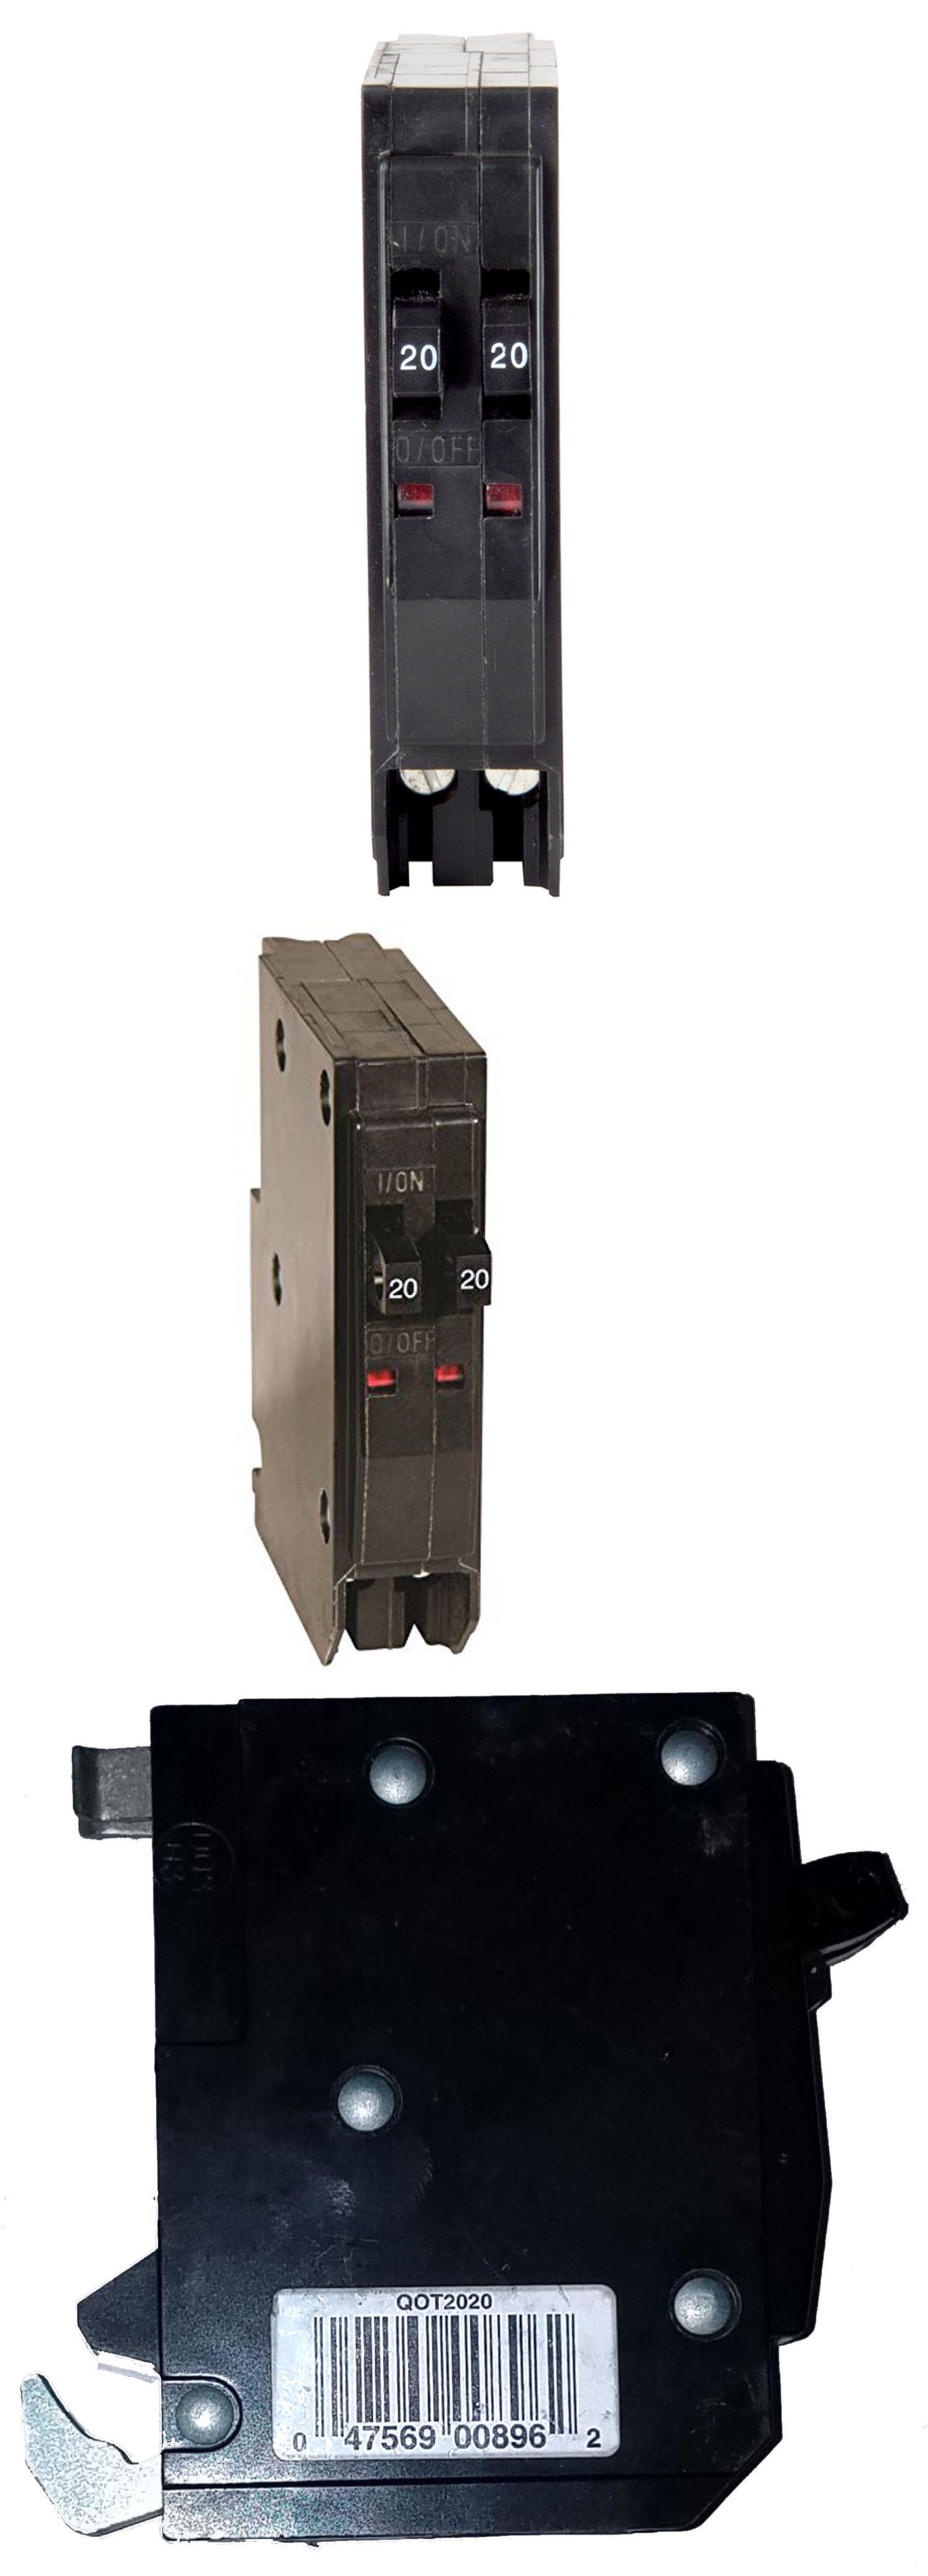 circuit breakers and fuse boxes 20596 square d qo 20 amp 1 pole tandem circuit breaker buy it now only 15 on ebay circuit breakers boxes square  [ 1500 x 4164 Pixel ]